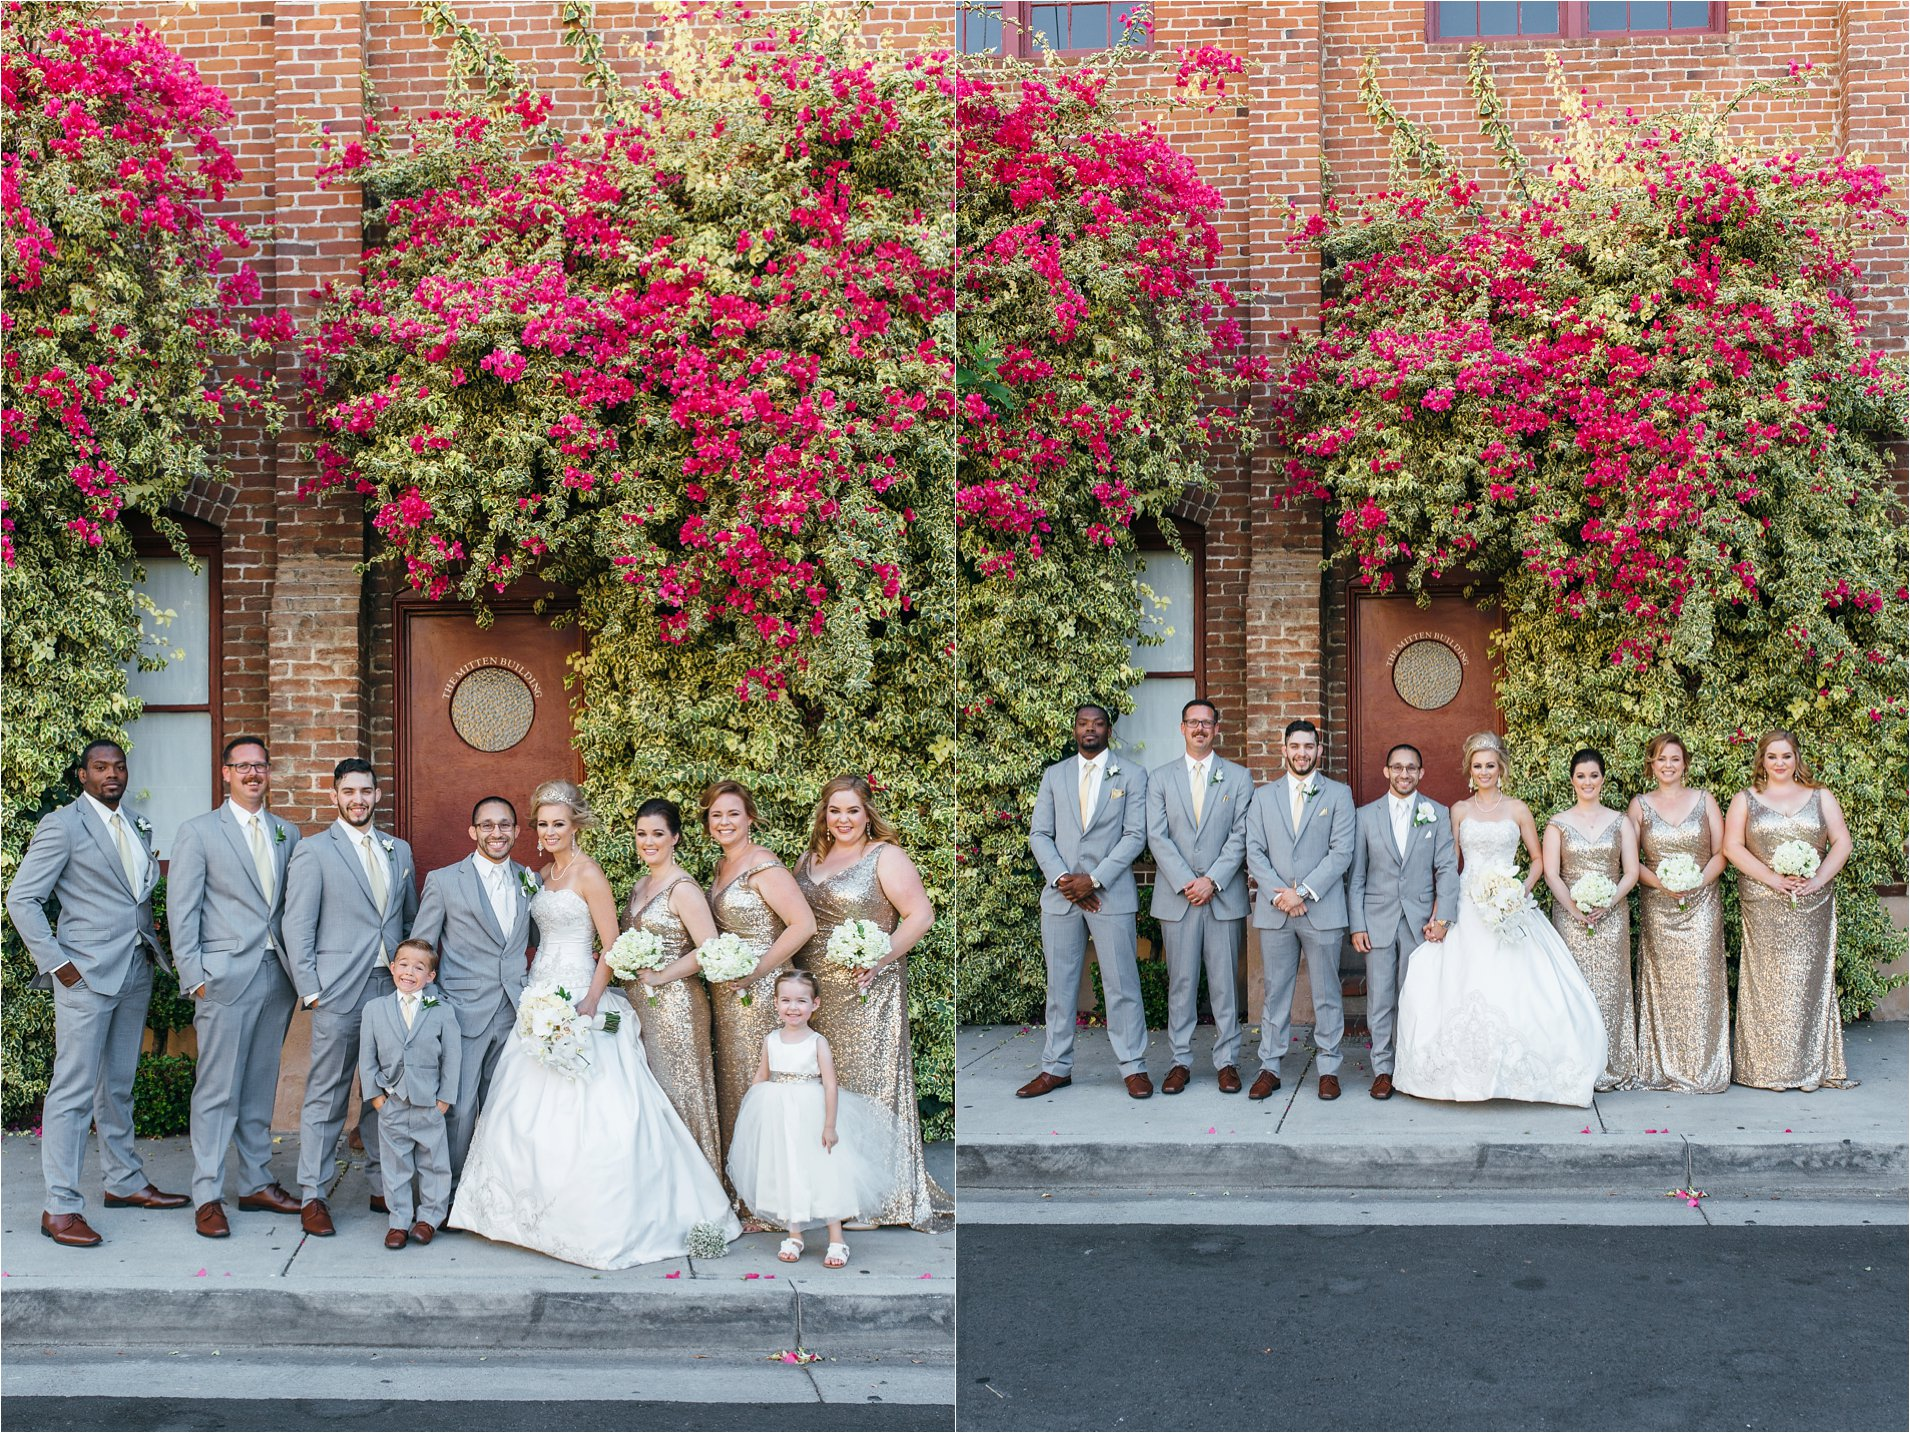 Mitten Building Wedding - Bridal Party Photos